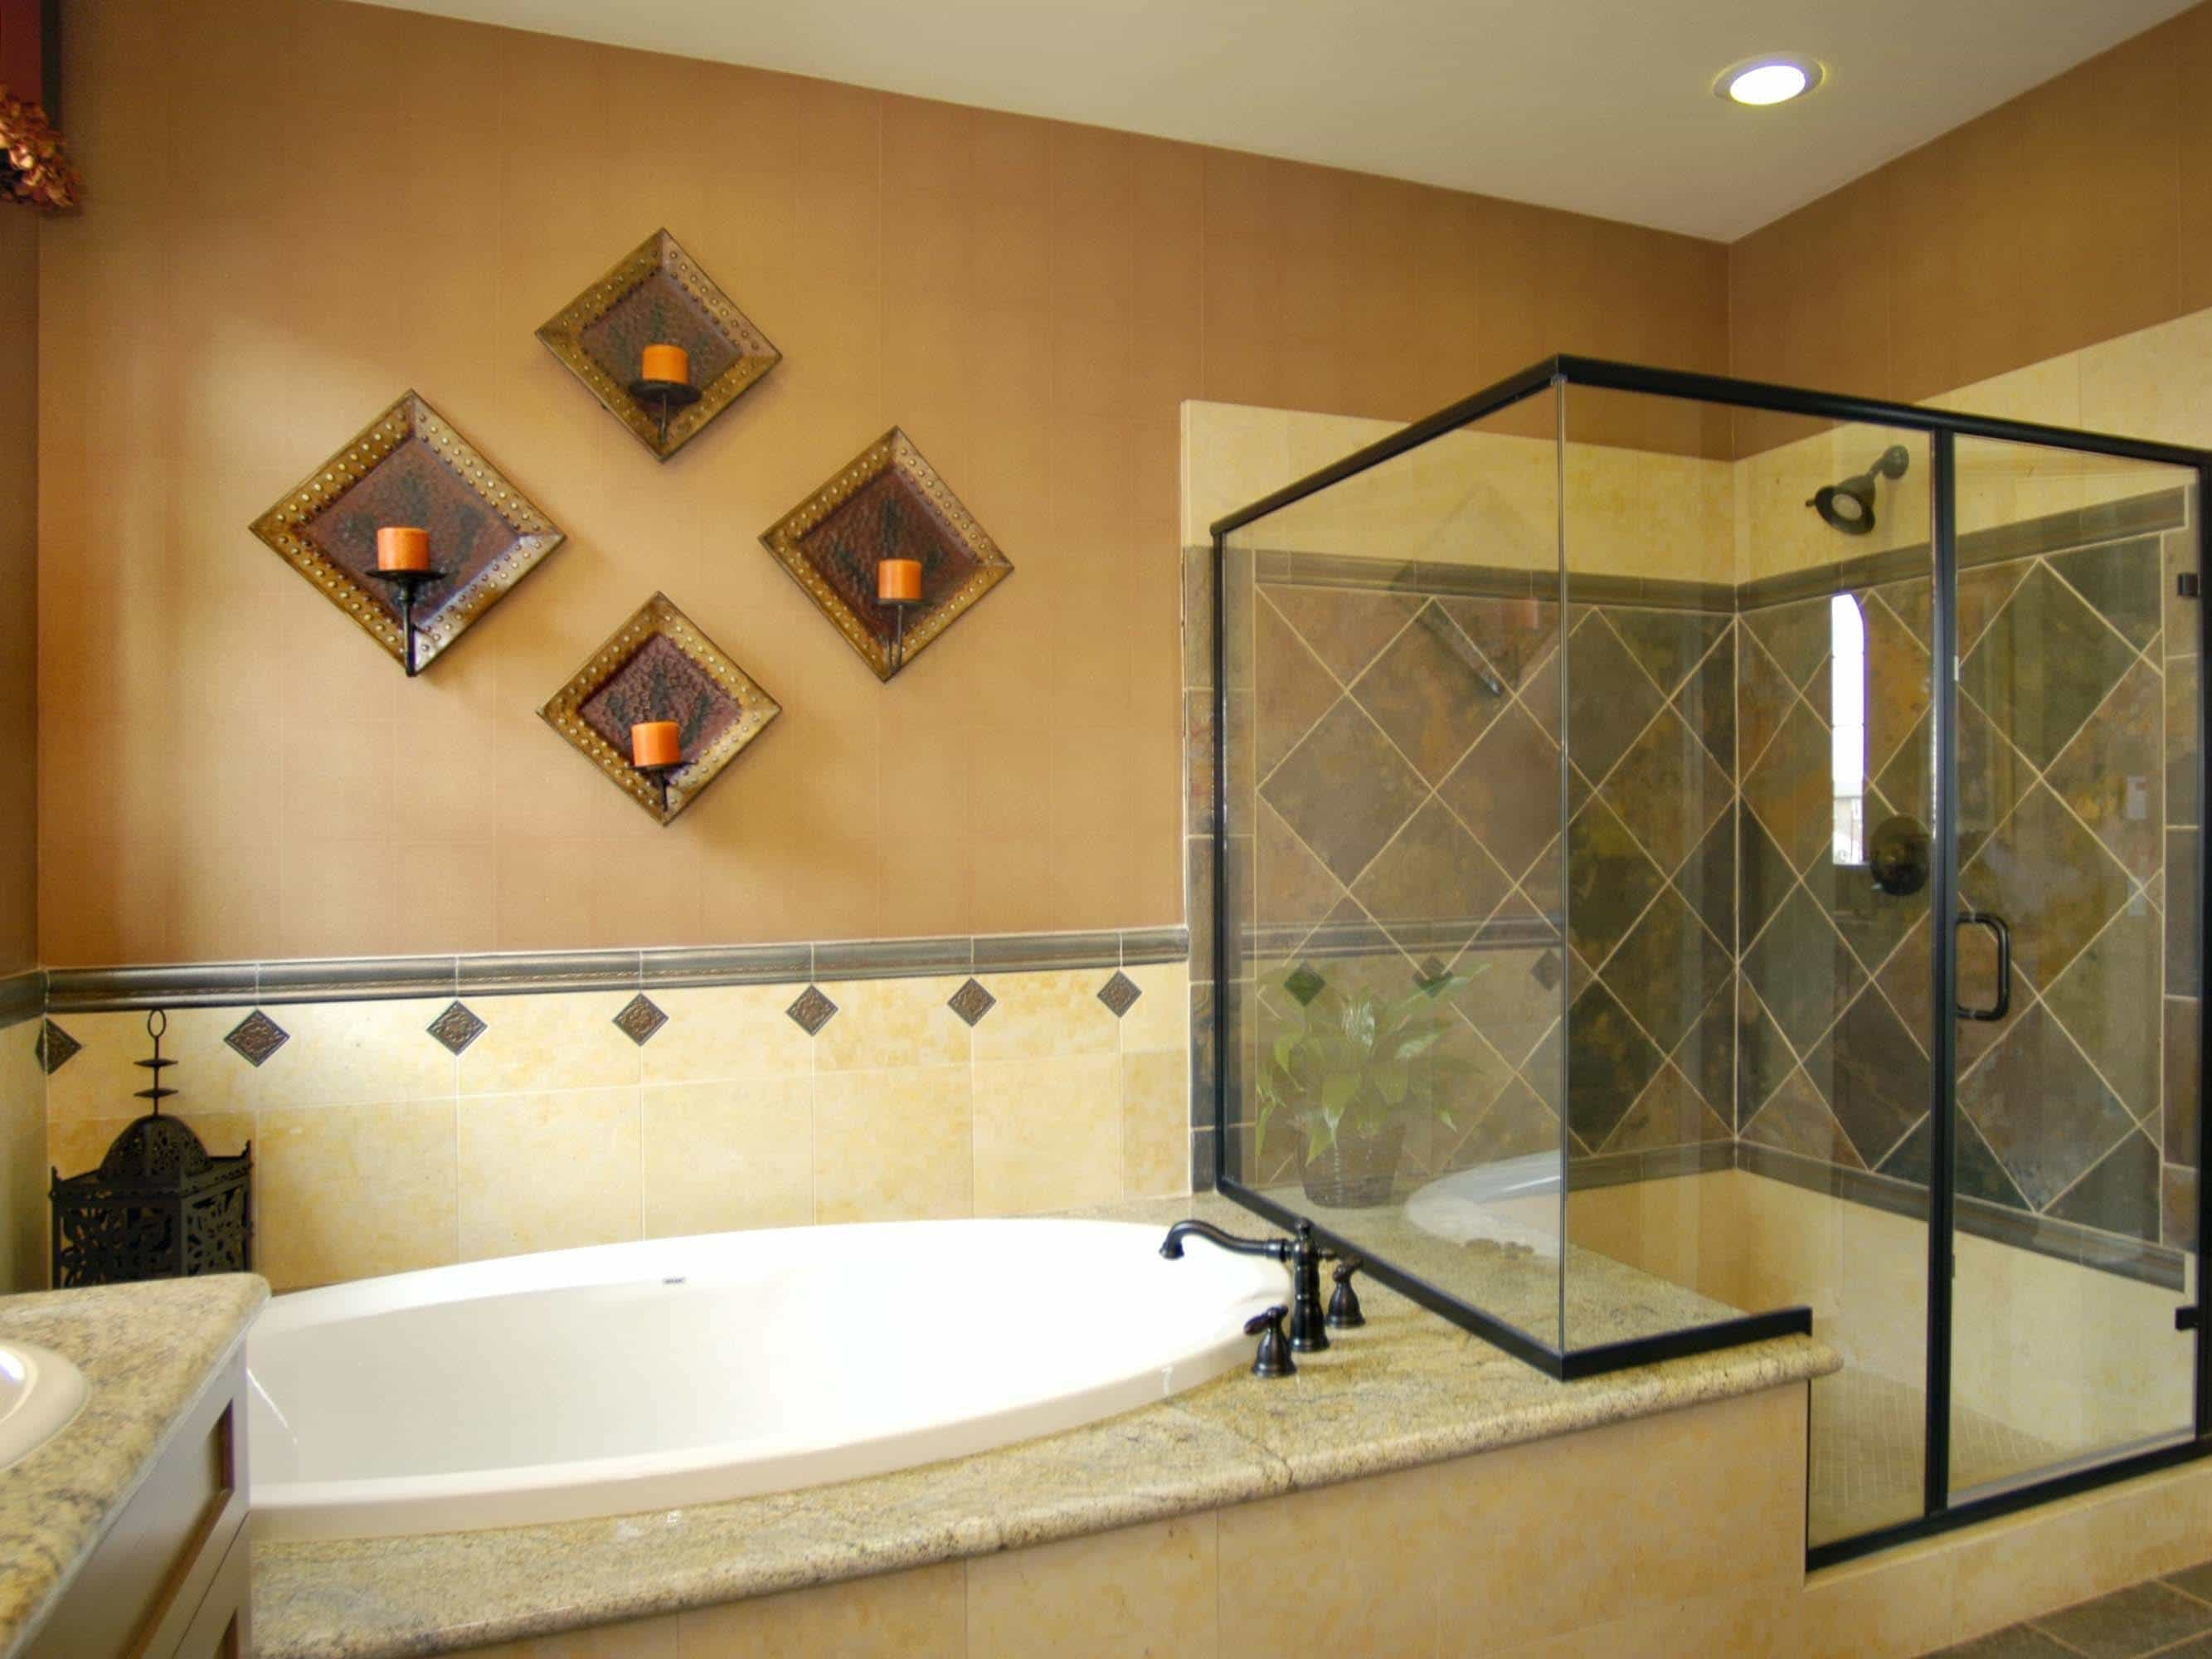 Old World Style Shower And Tub Combo (Photo 12 of 16)